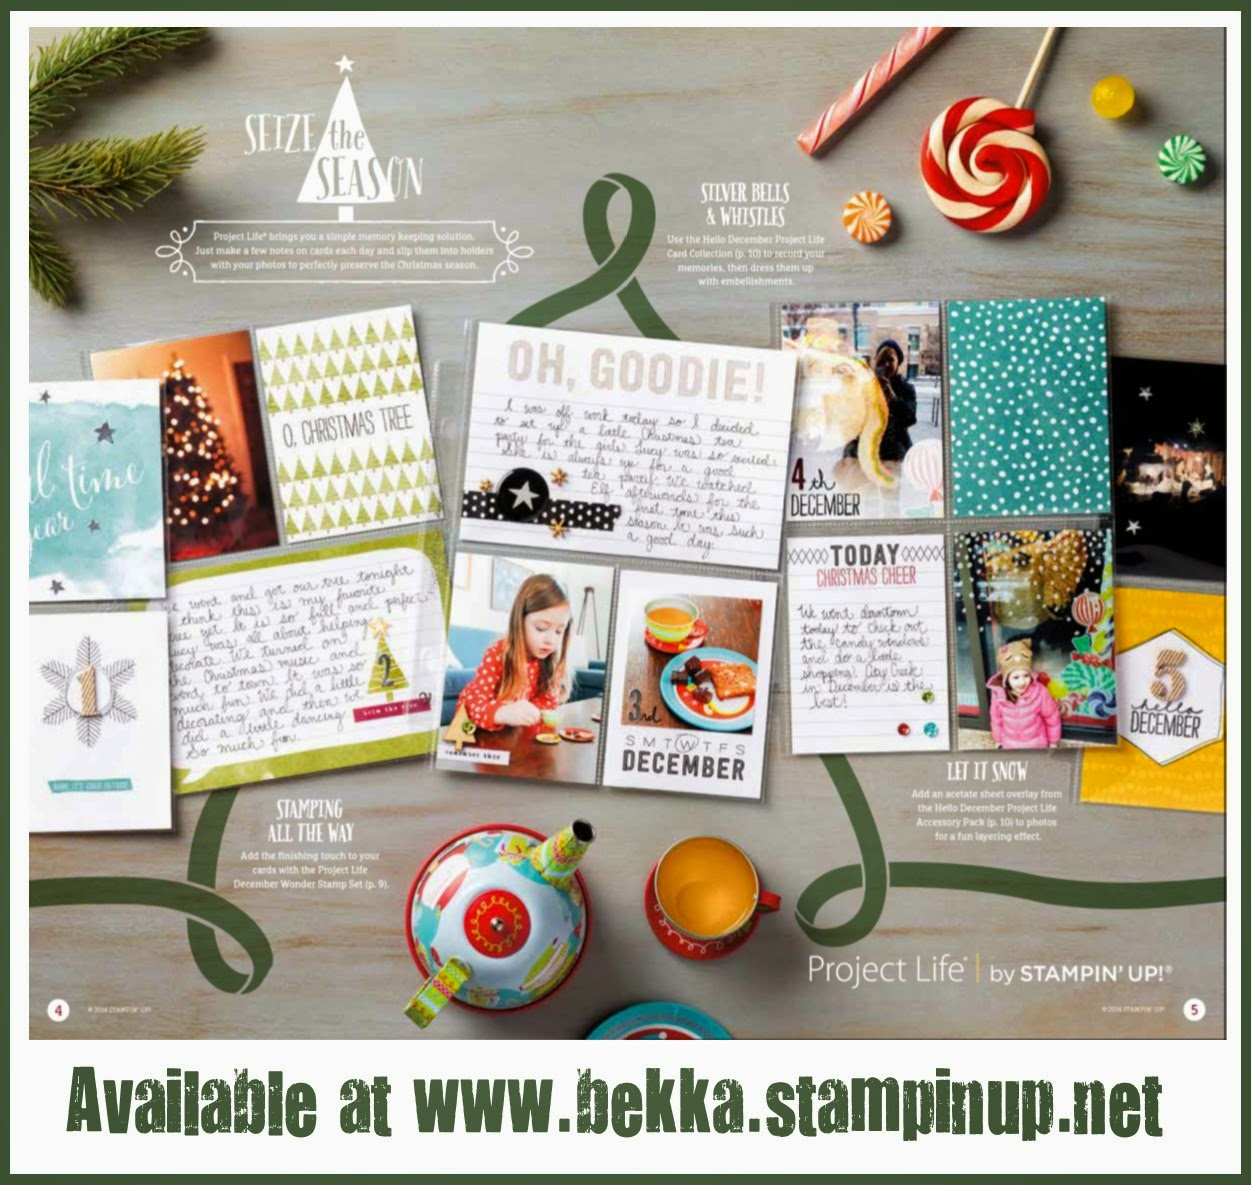 Hello Deccember Project Life by Stampin' Up! Kits available at www.bekka.stampinup.net  Ideal for Journal Your Christmas or December Daily